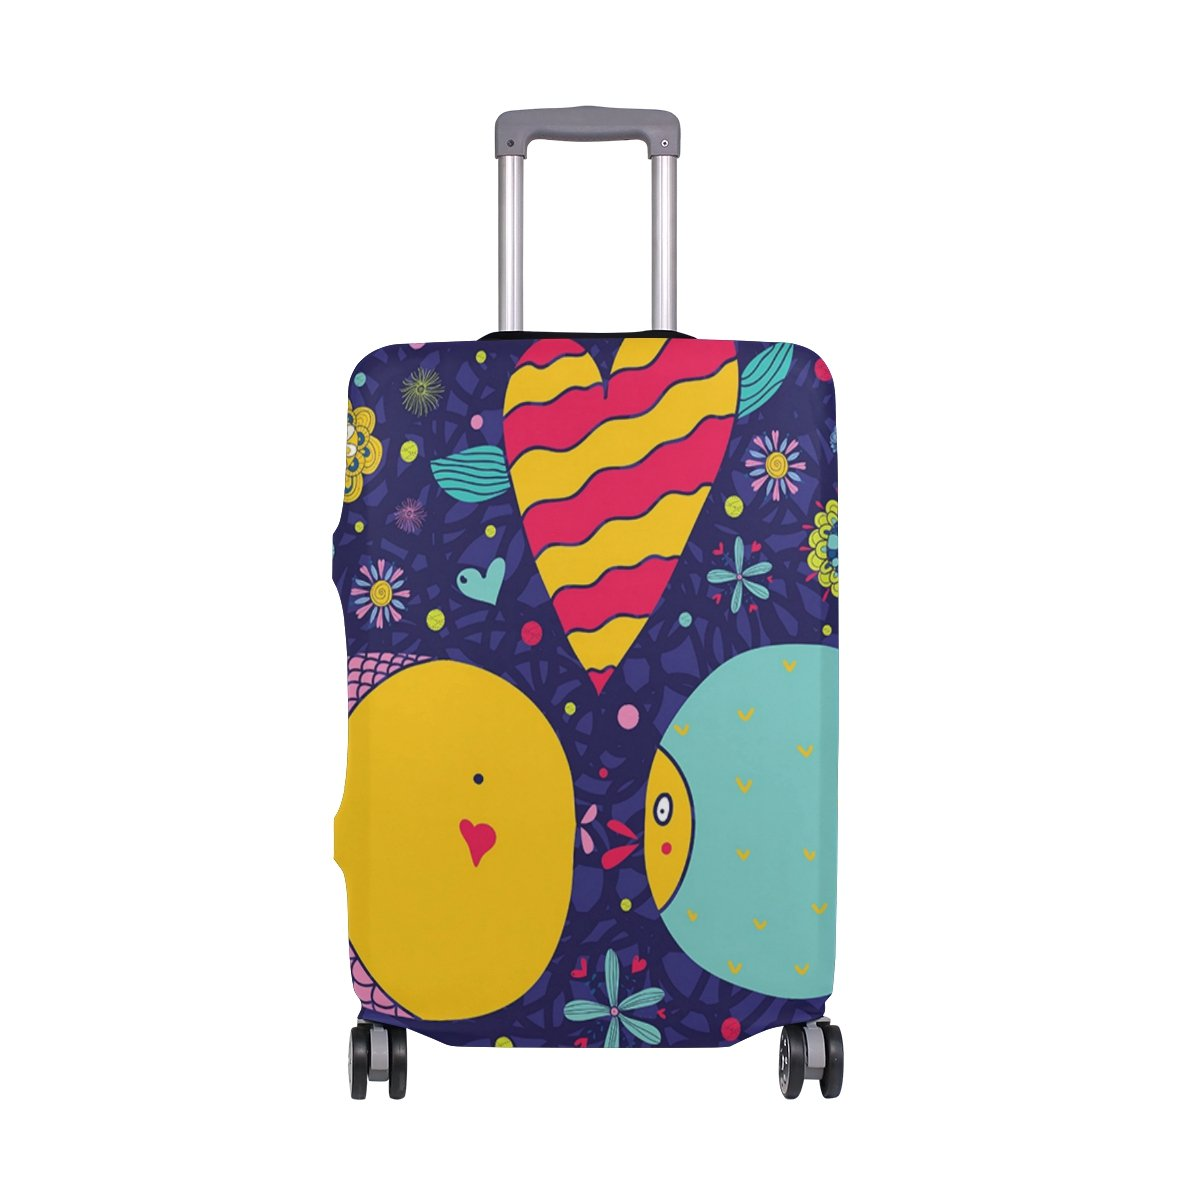 Cute Fish Love Sea Ocean World Suitcase Luggage Cover Protector for Travel Kids Men Women